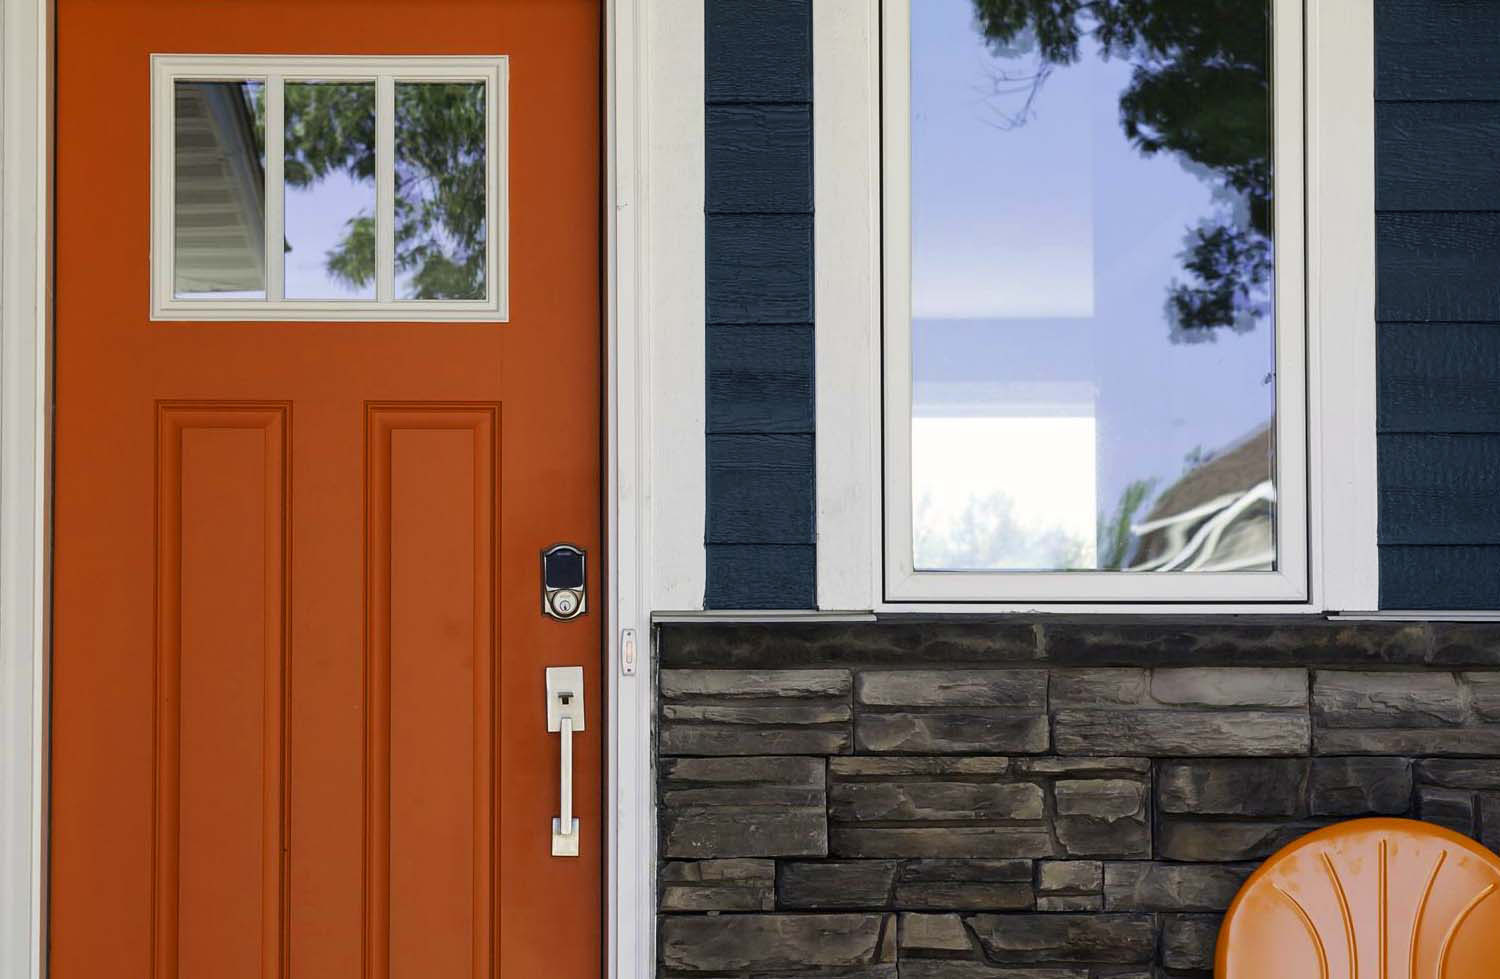 Dark blue house with a bright reddish orange front door and real stone veneer.